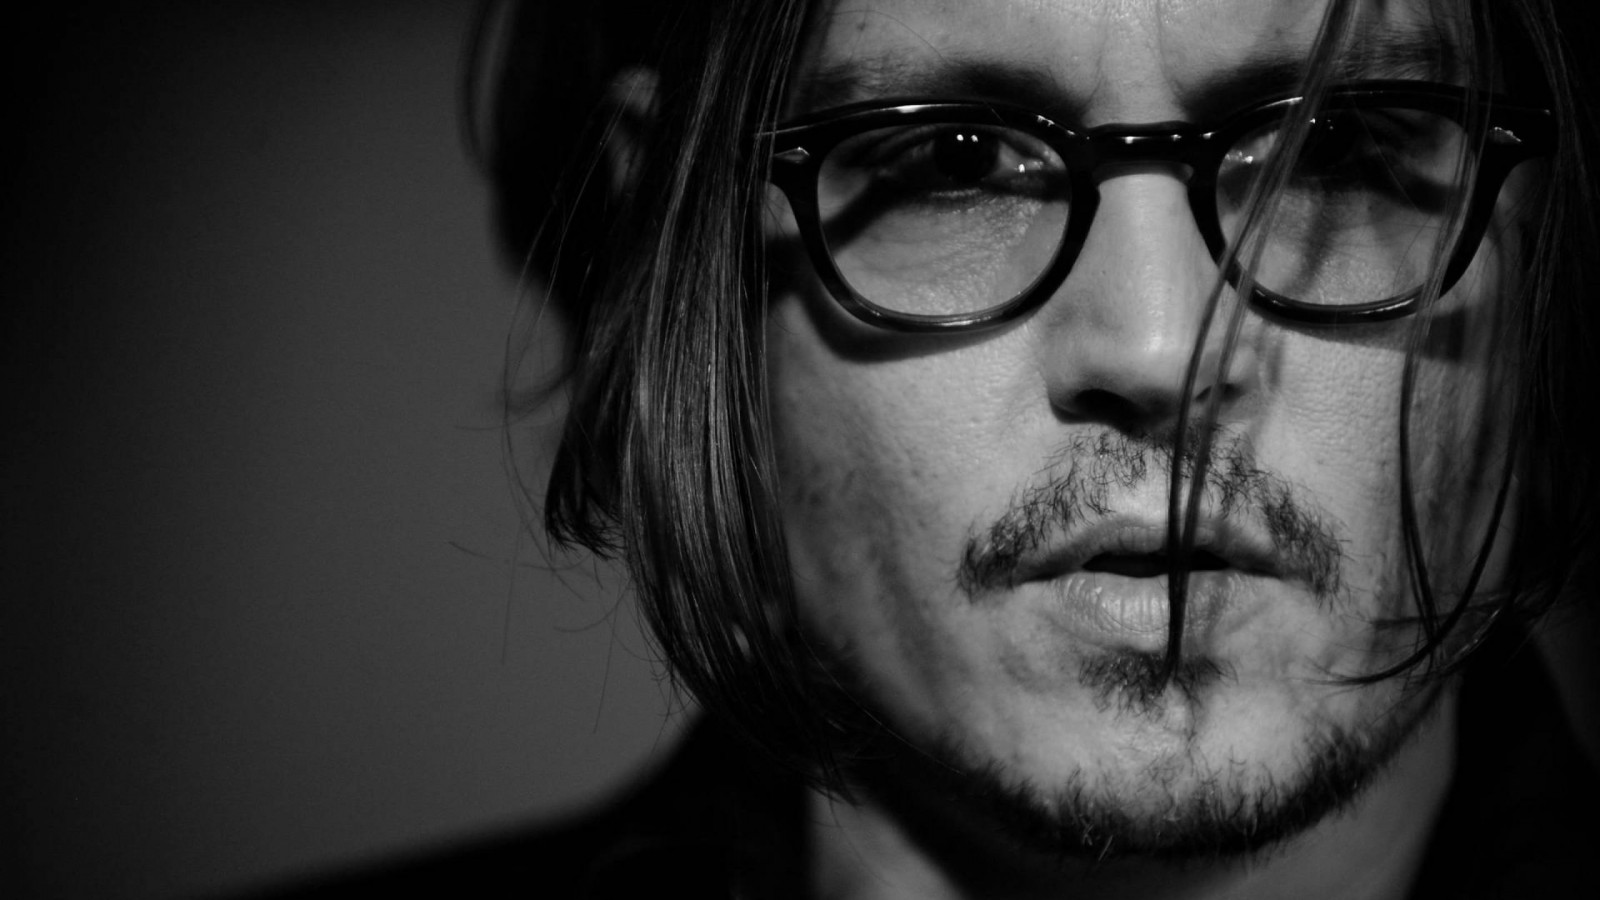 Johnny Depp Black & White Portrait Wallpaper for Desktop 1600x900